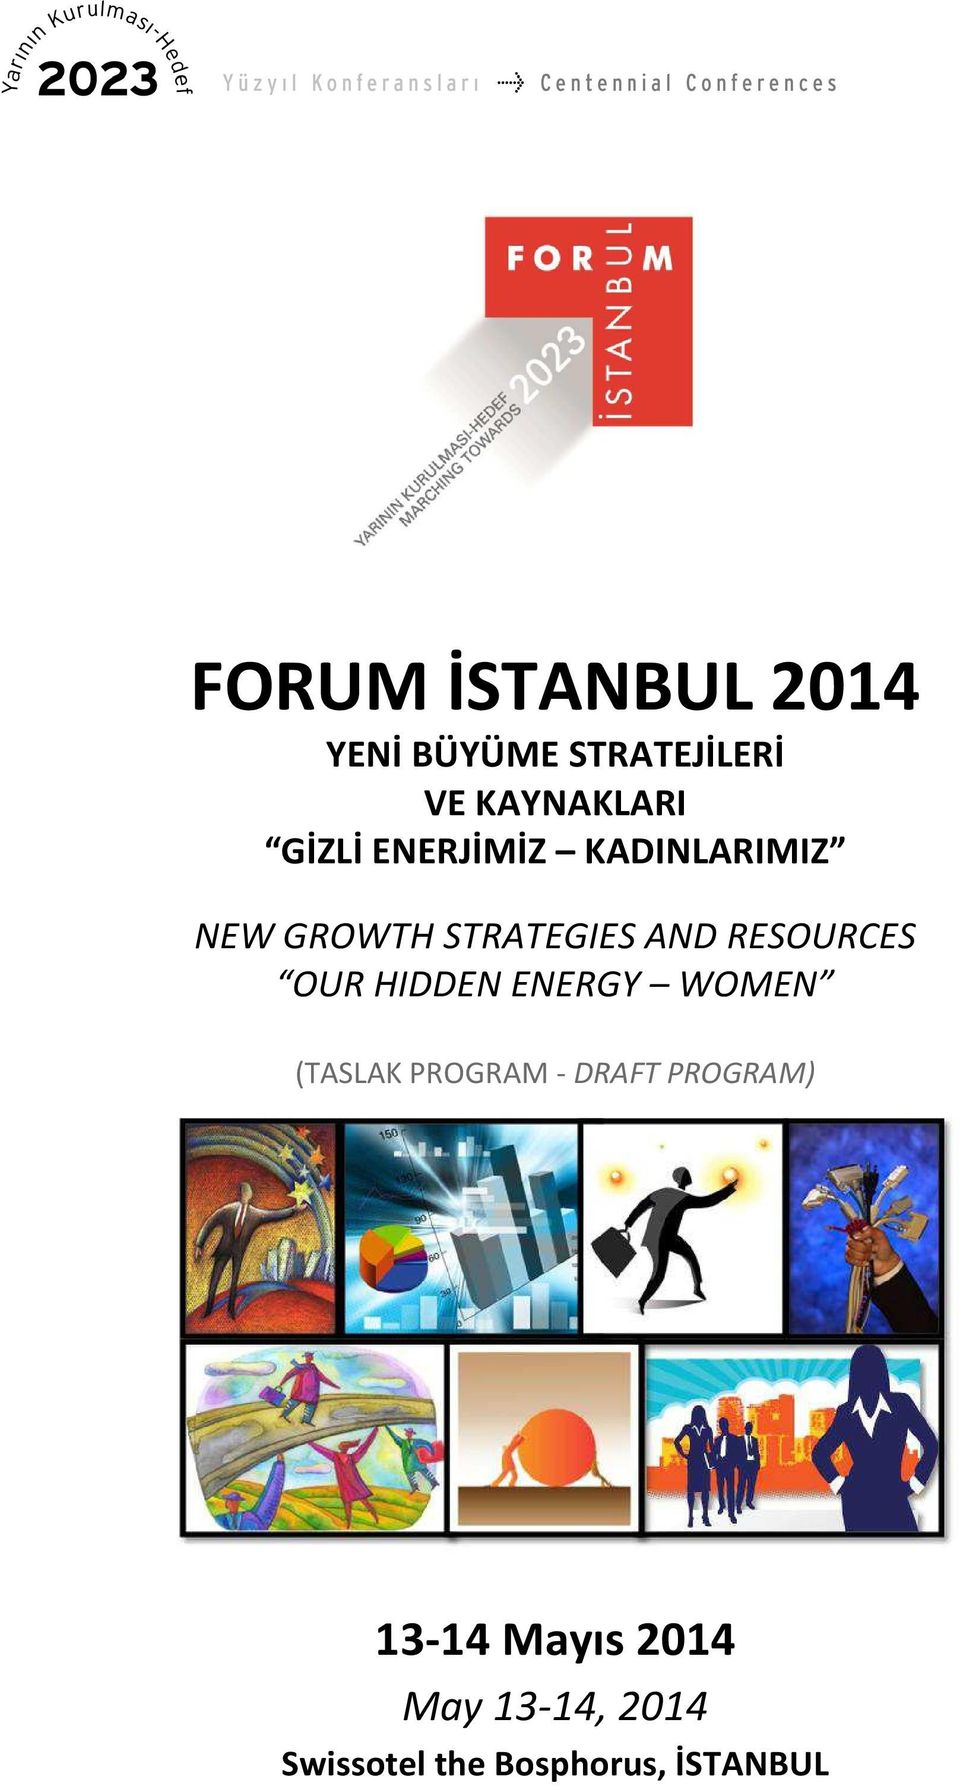 RESOURCES OUR HIDDEN ENERGY WOMEN (TASLAK PROGRAM - DRAFT